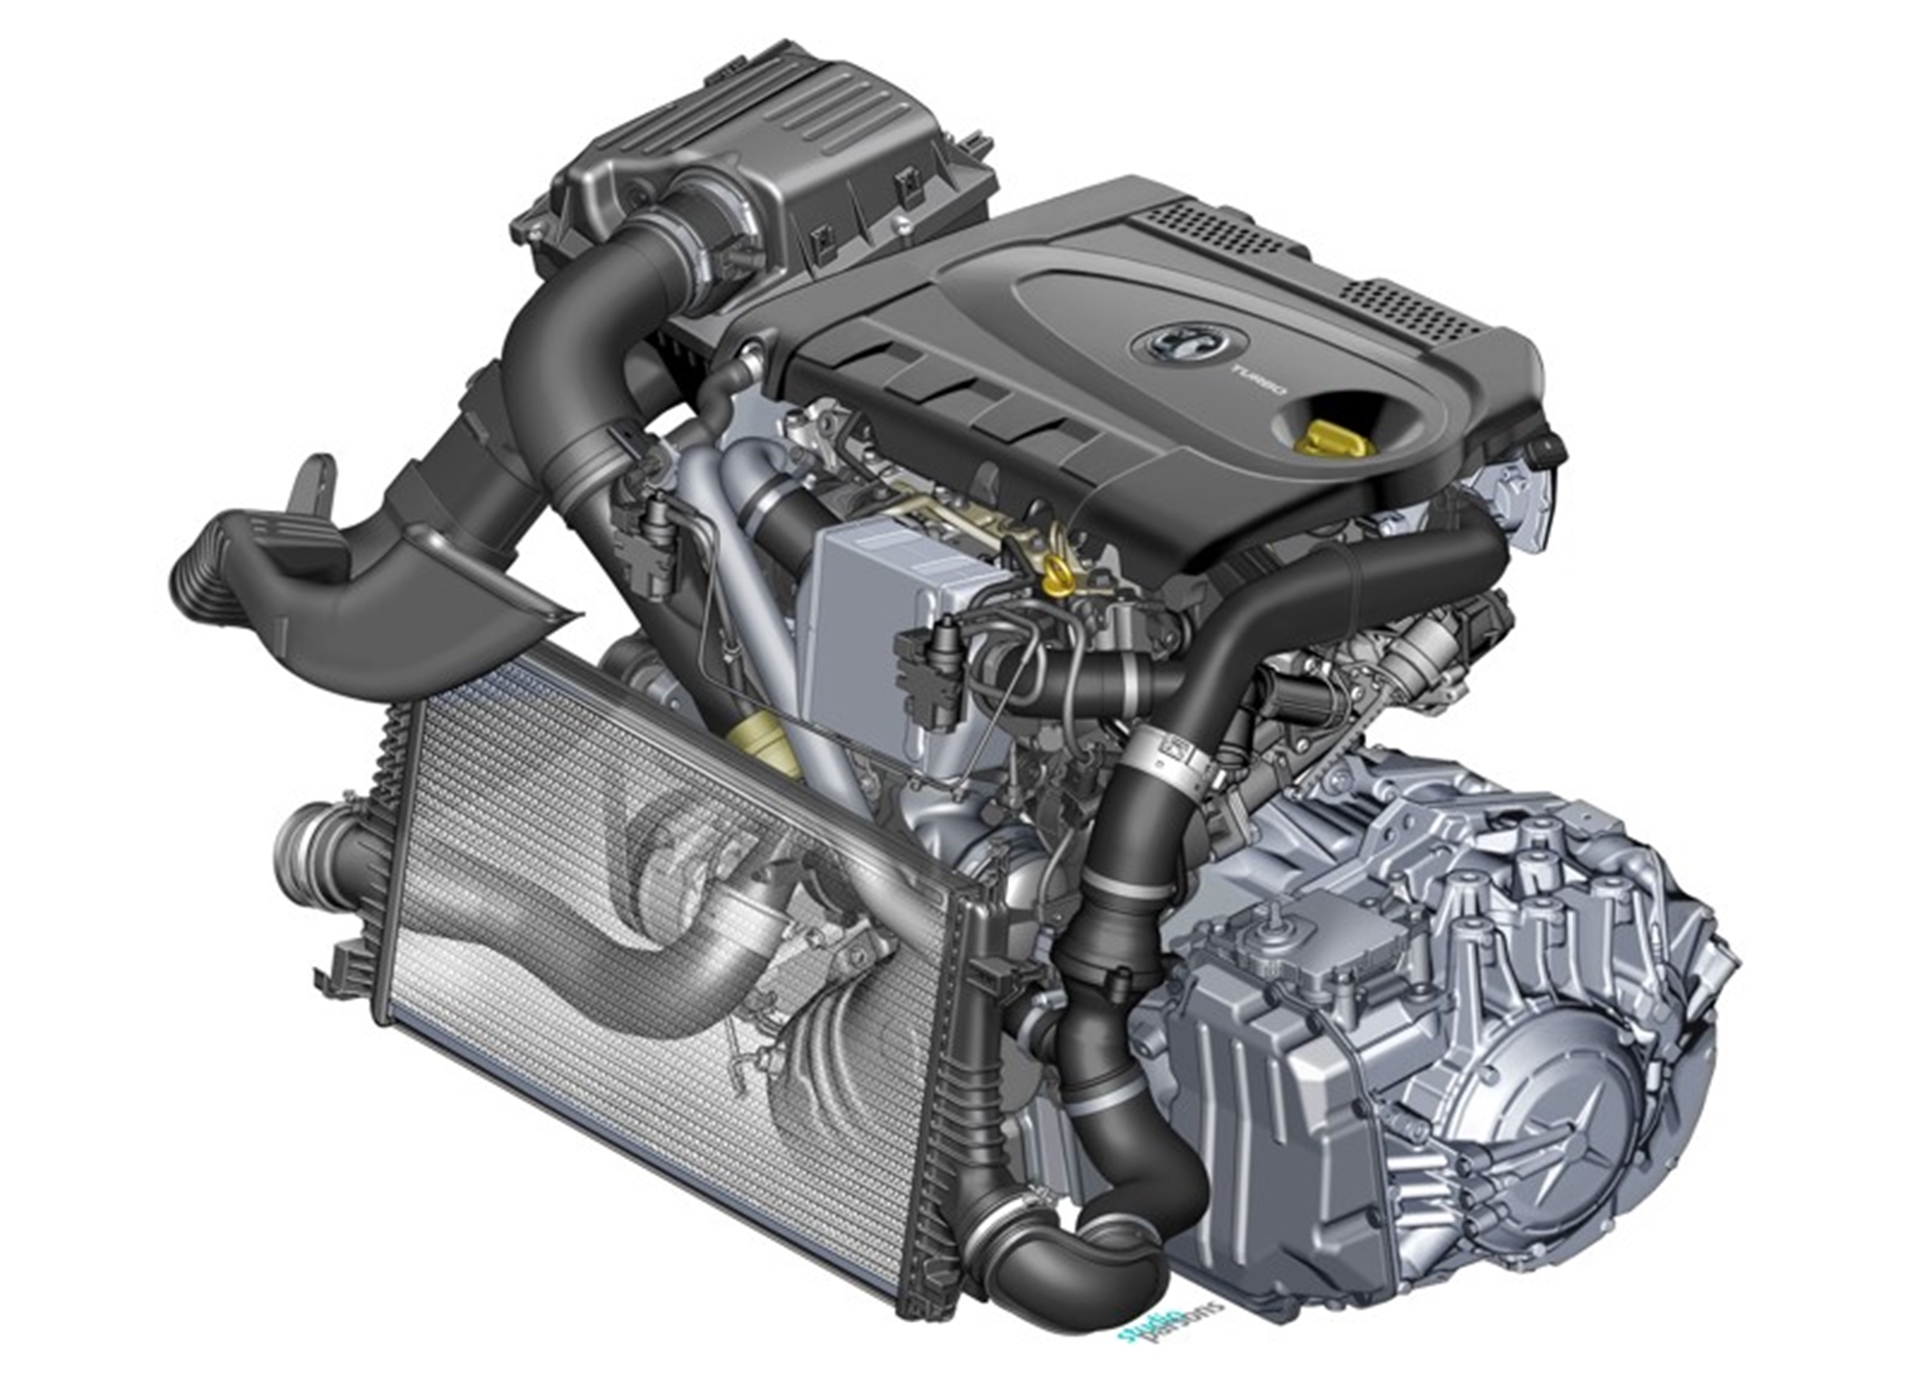 Vauxhall's twin-sequential turbocharged diesel engine